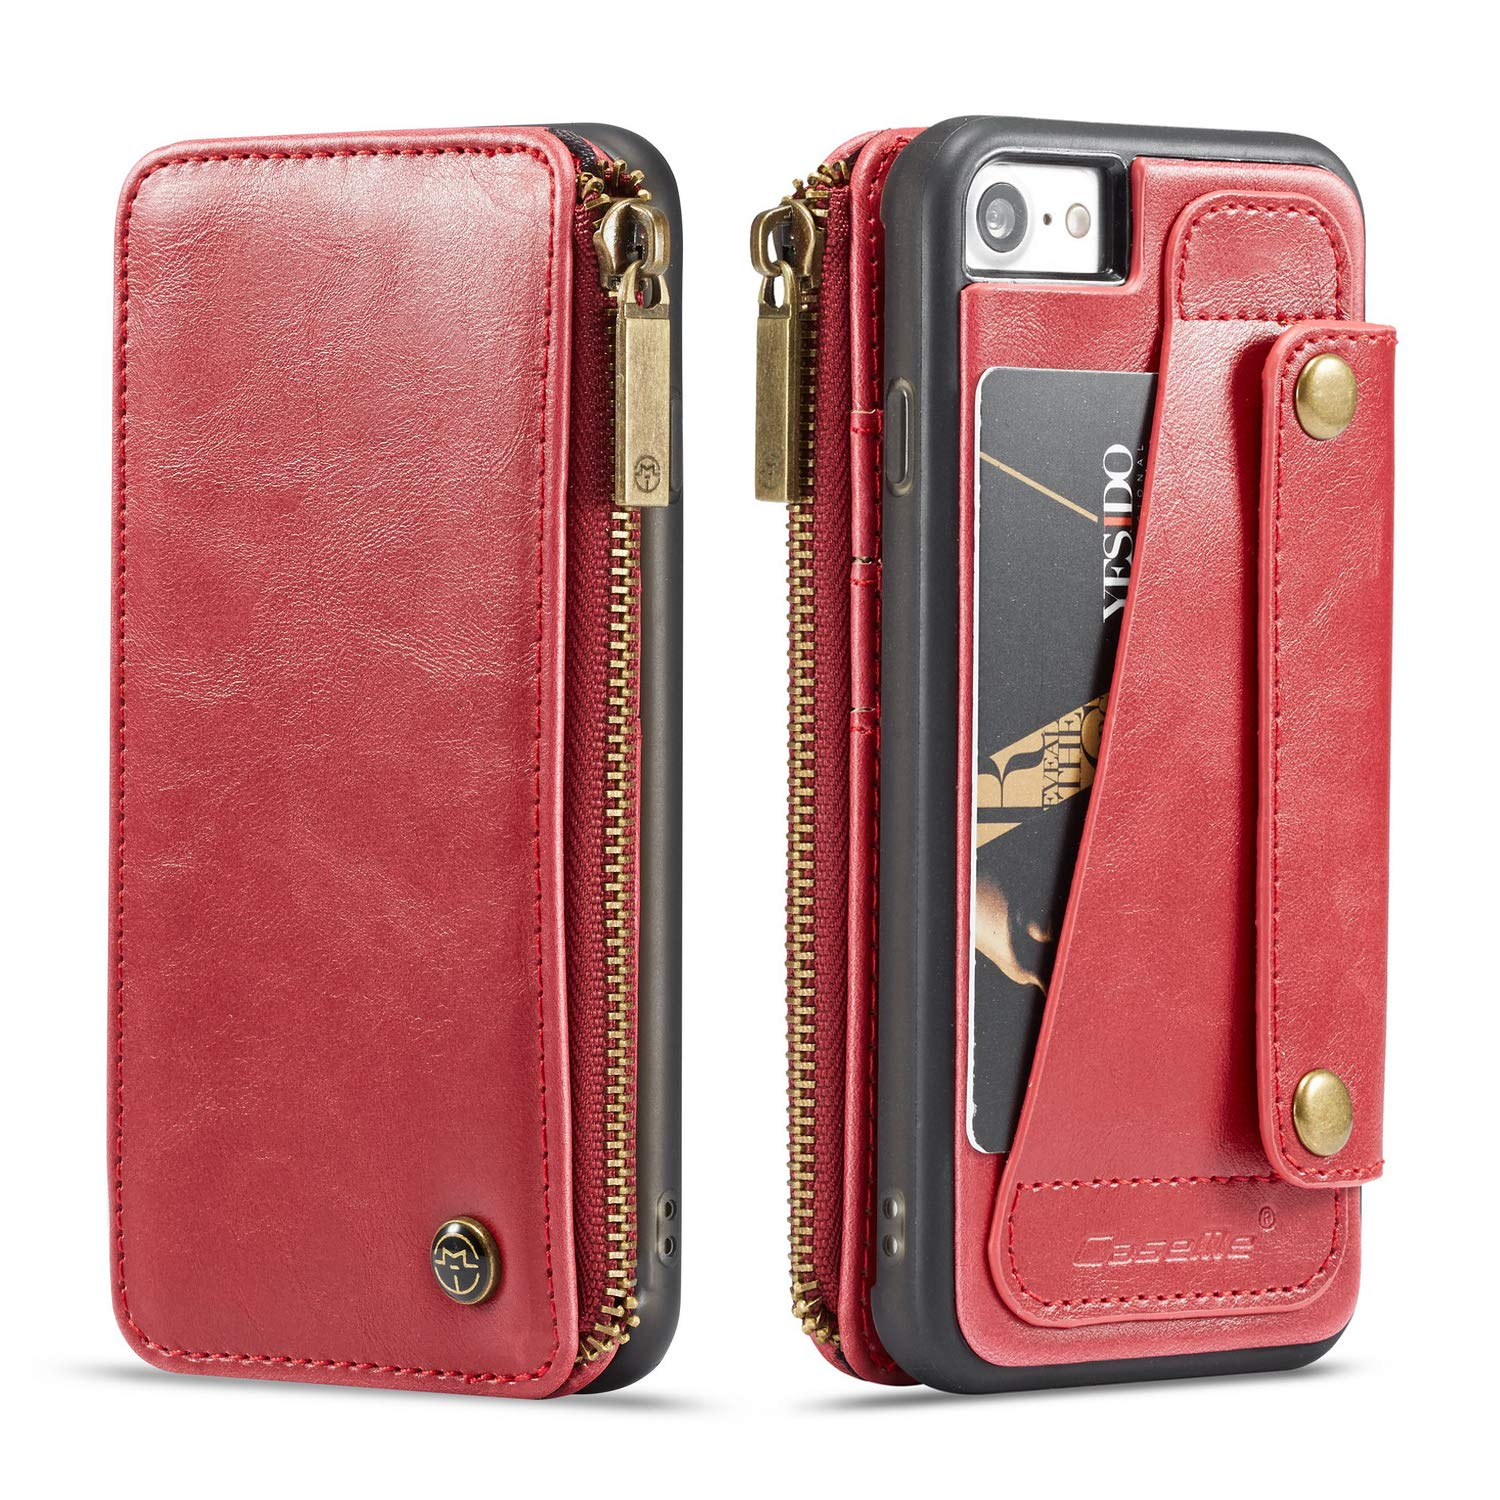 2 Money Pockets Black 4 Card Slot Kickstand Full Protection 4.7inch Anti-Scratch for Girls Boys Unisex one Zipper for Cash ID card,credit card Wallet Leather Case for Apple iPhone 8 iPhone 7